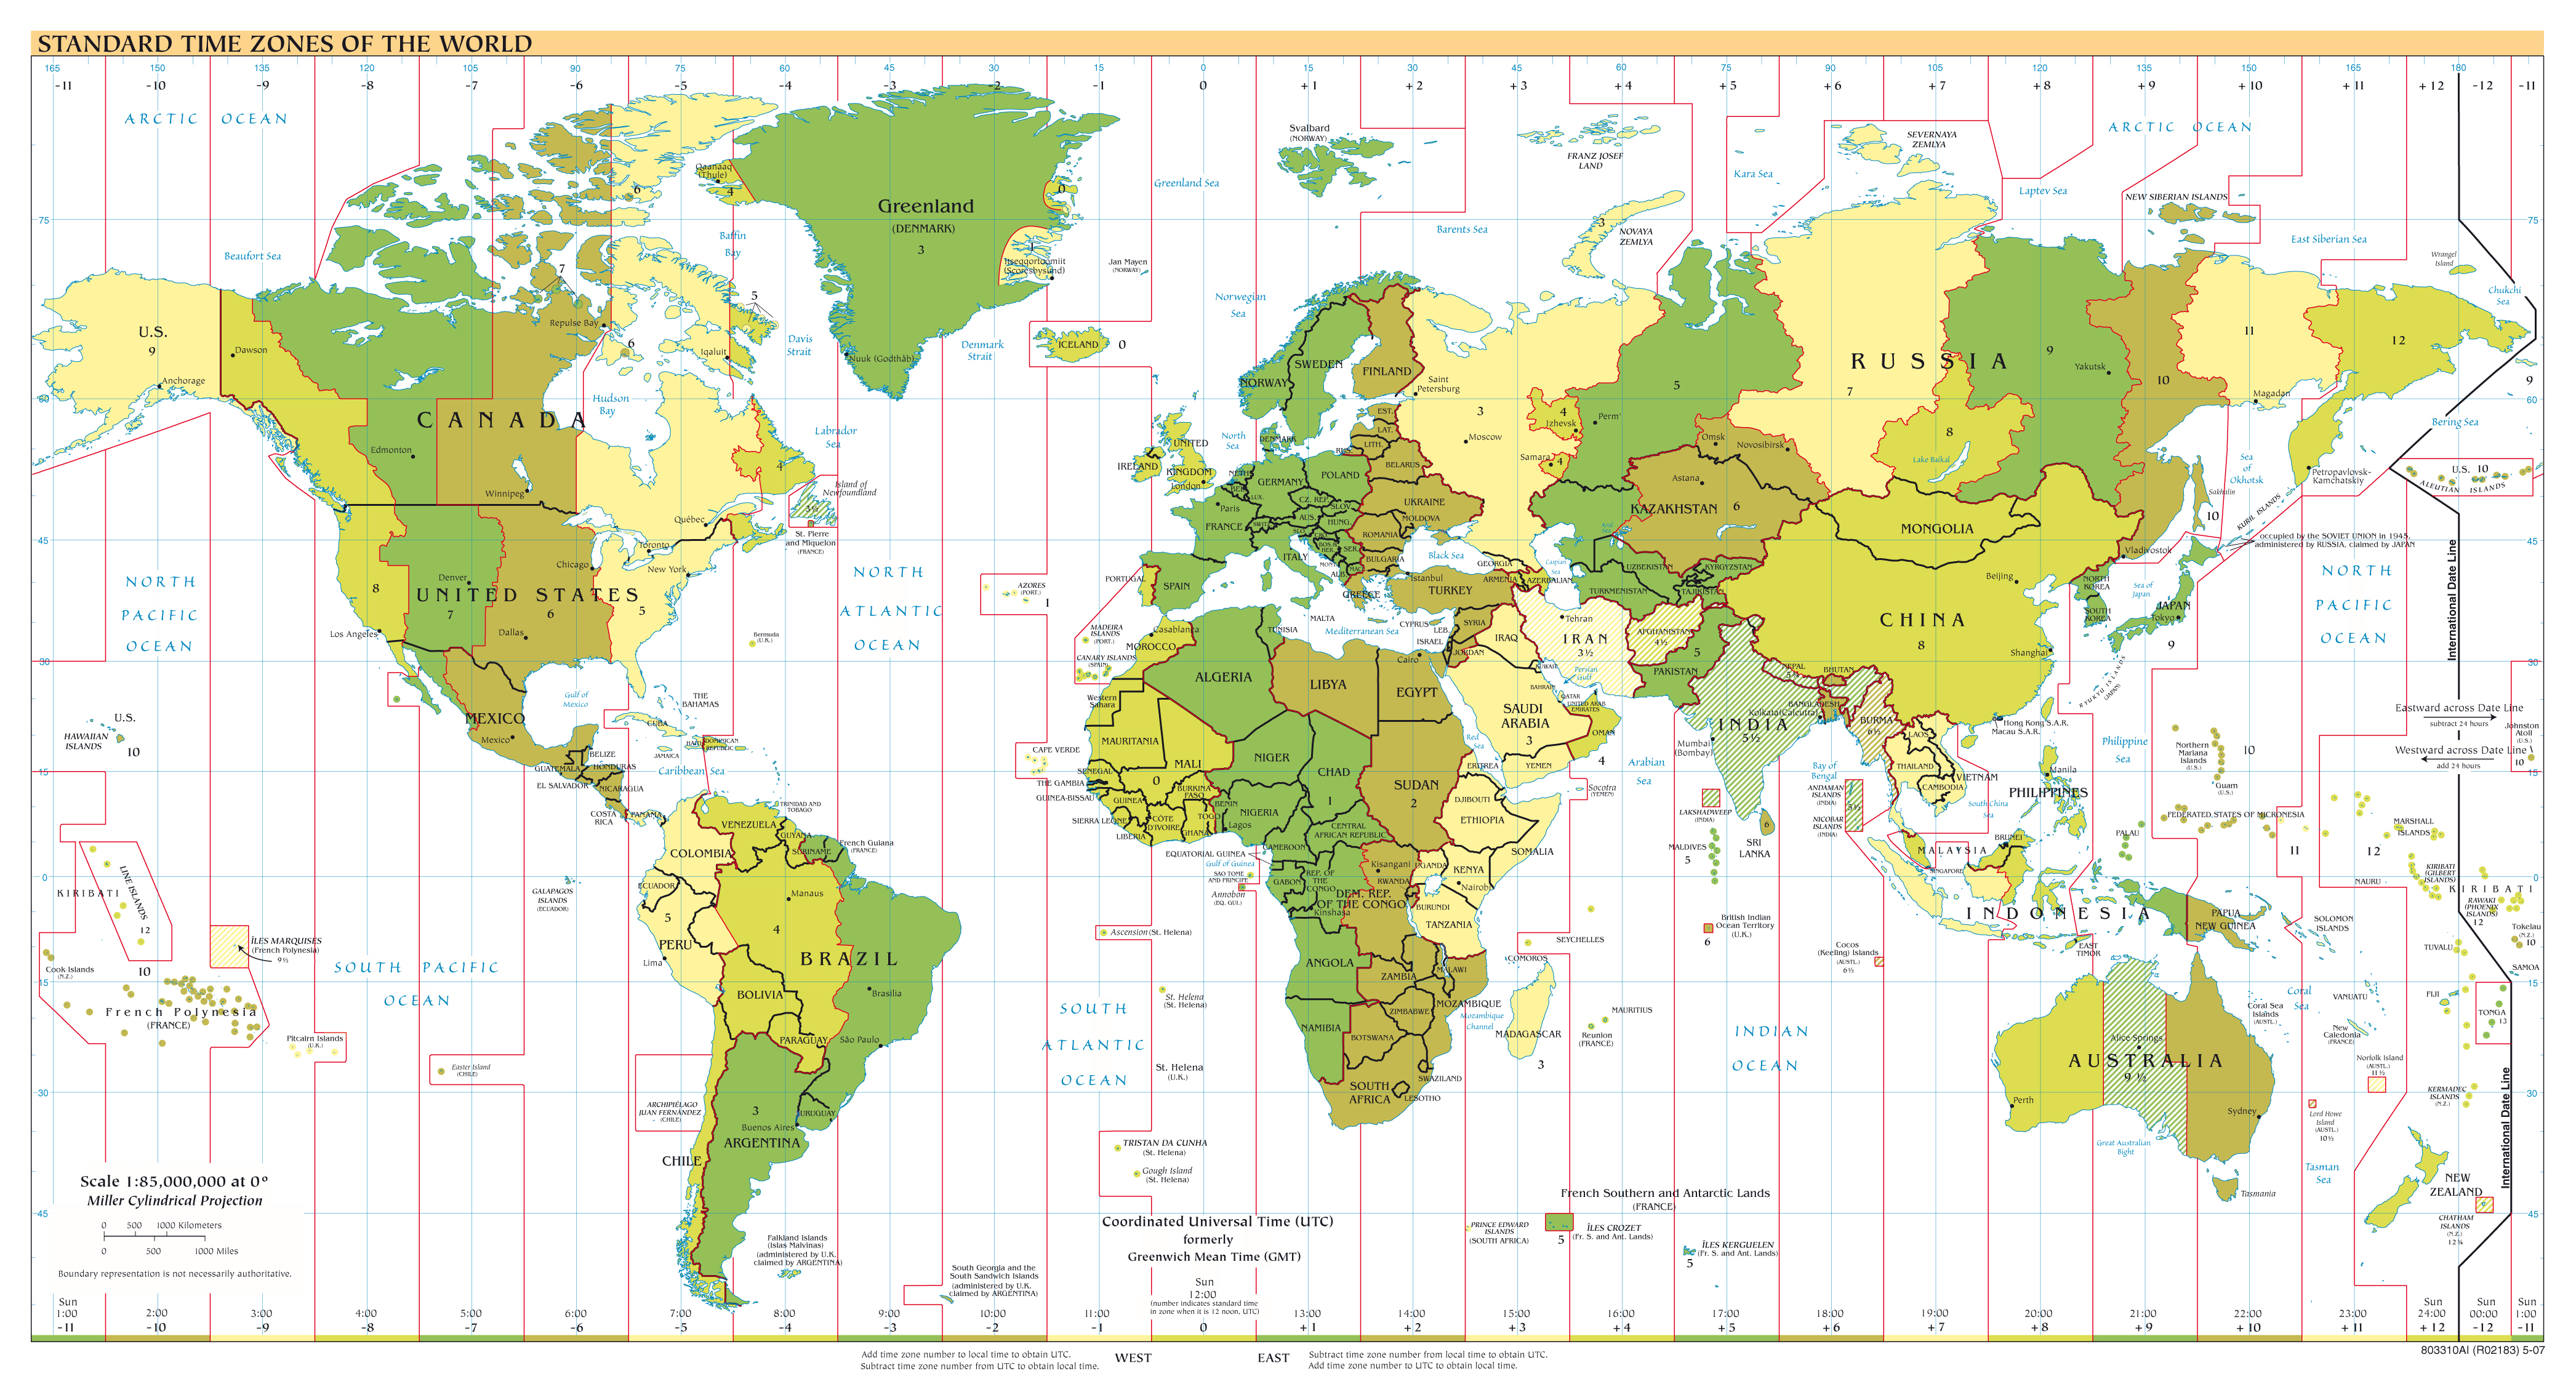 Large Scale Map Of France.Large Scale Standart Time Zones Map Of The World 2007